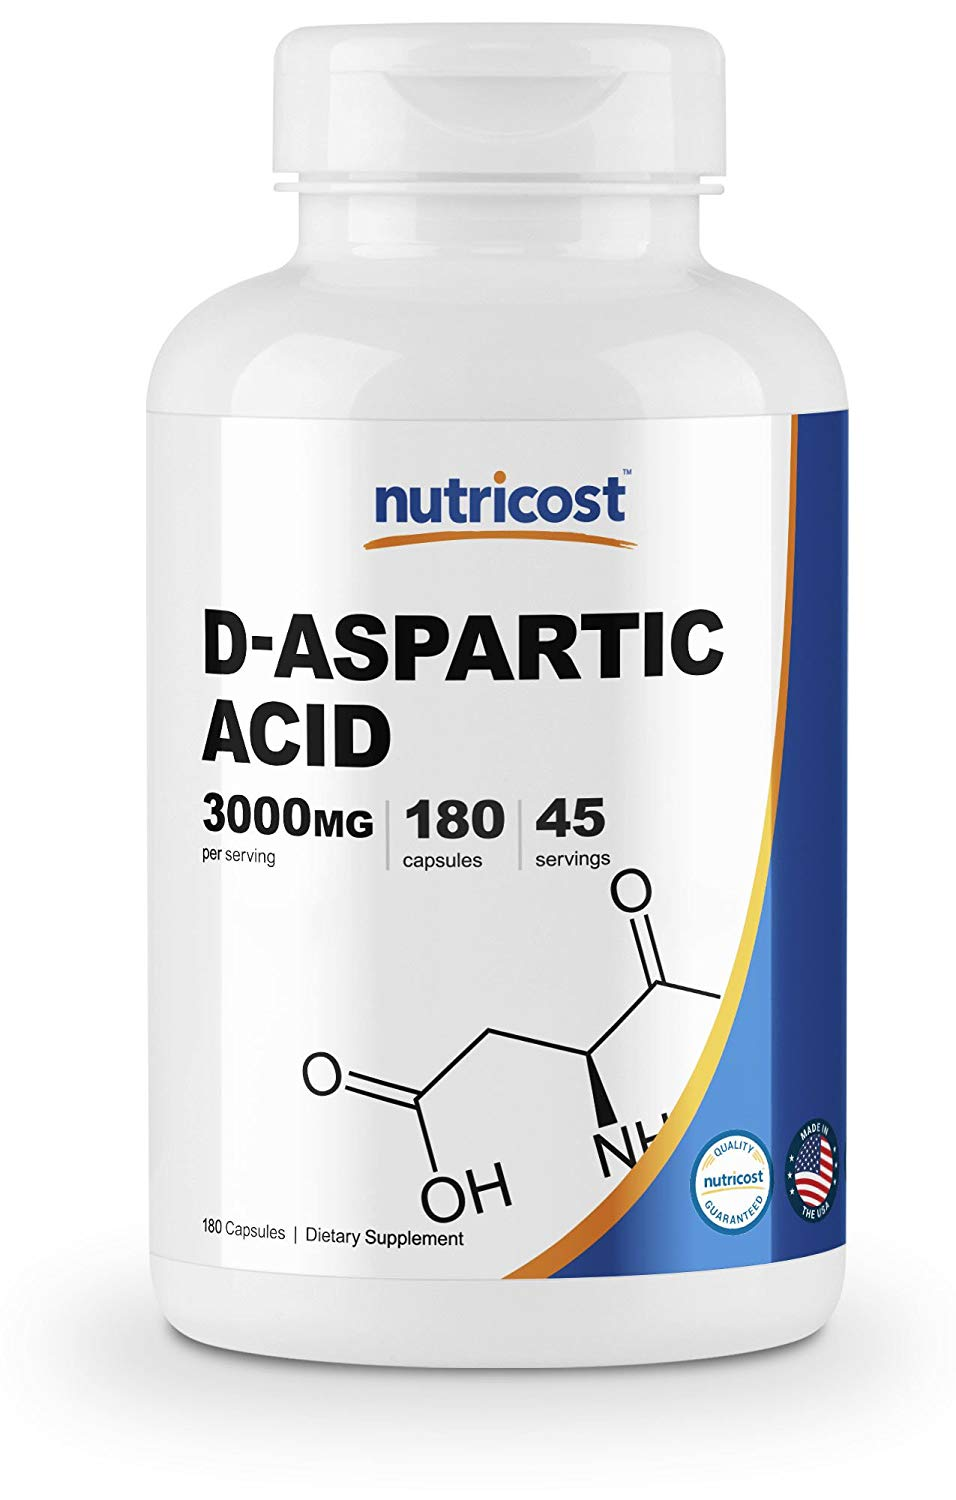 Nootropic D-Aspartic Acid